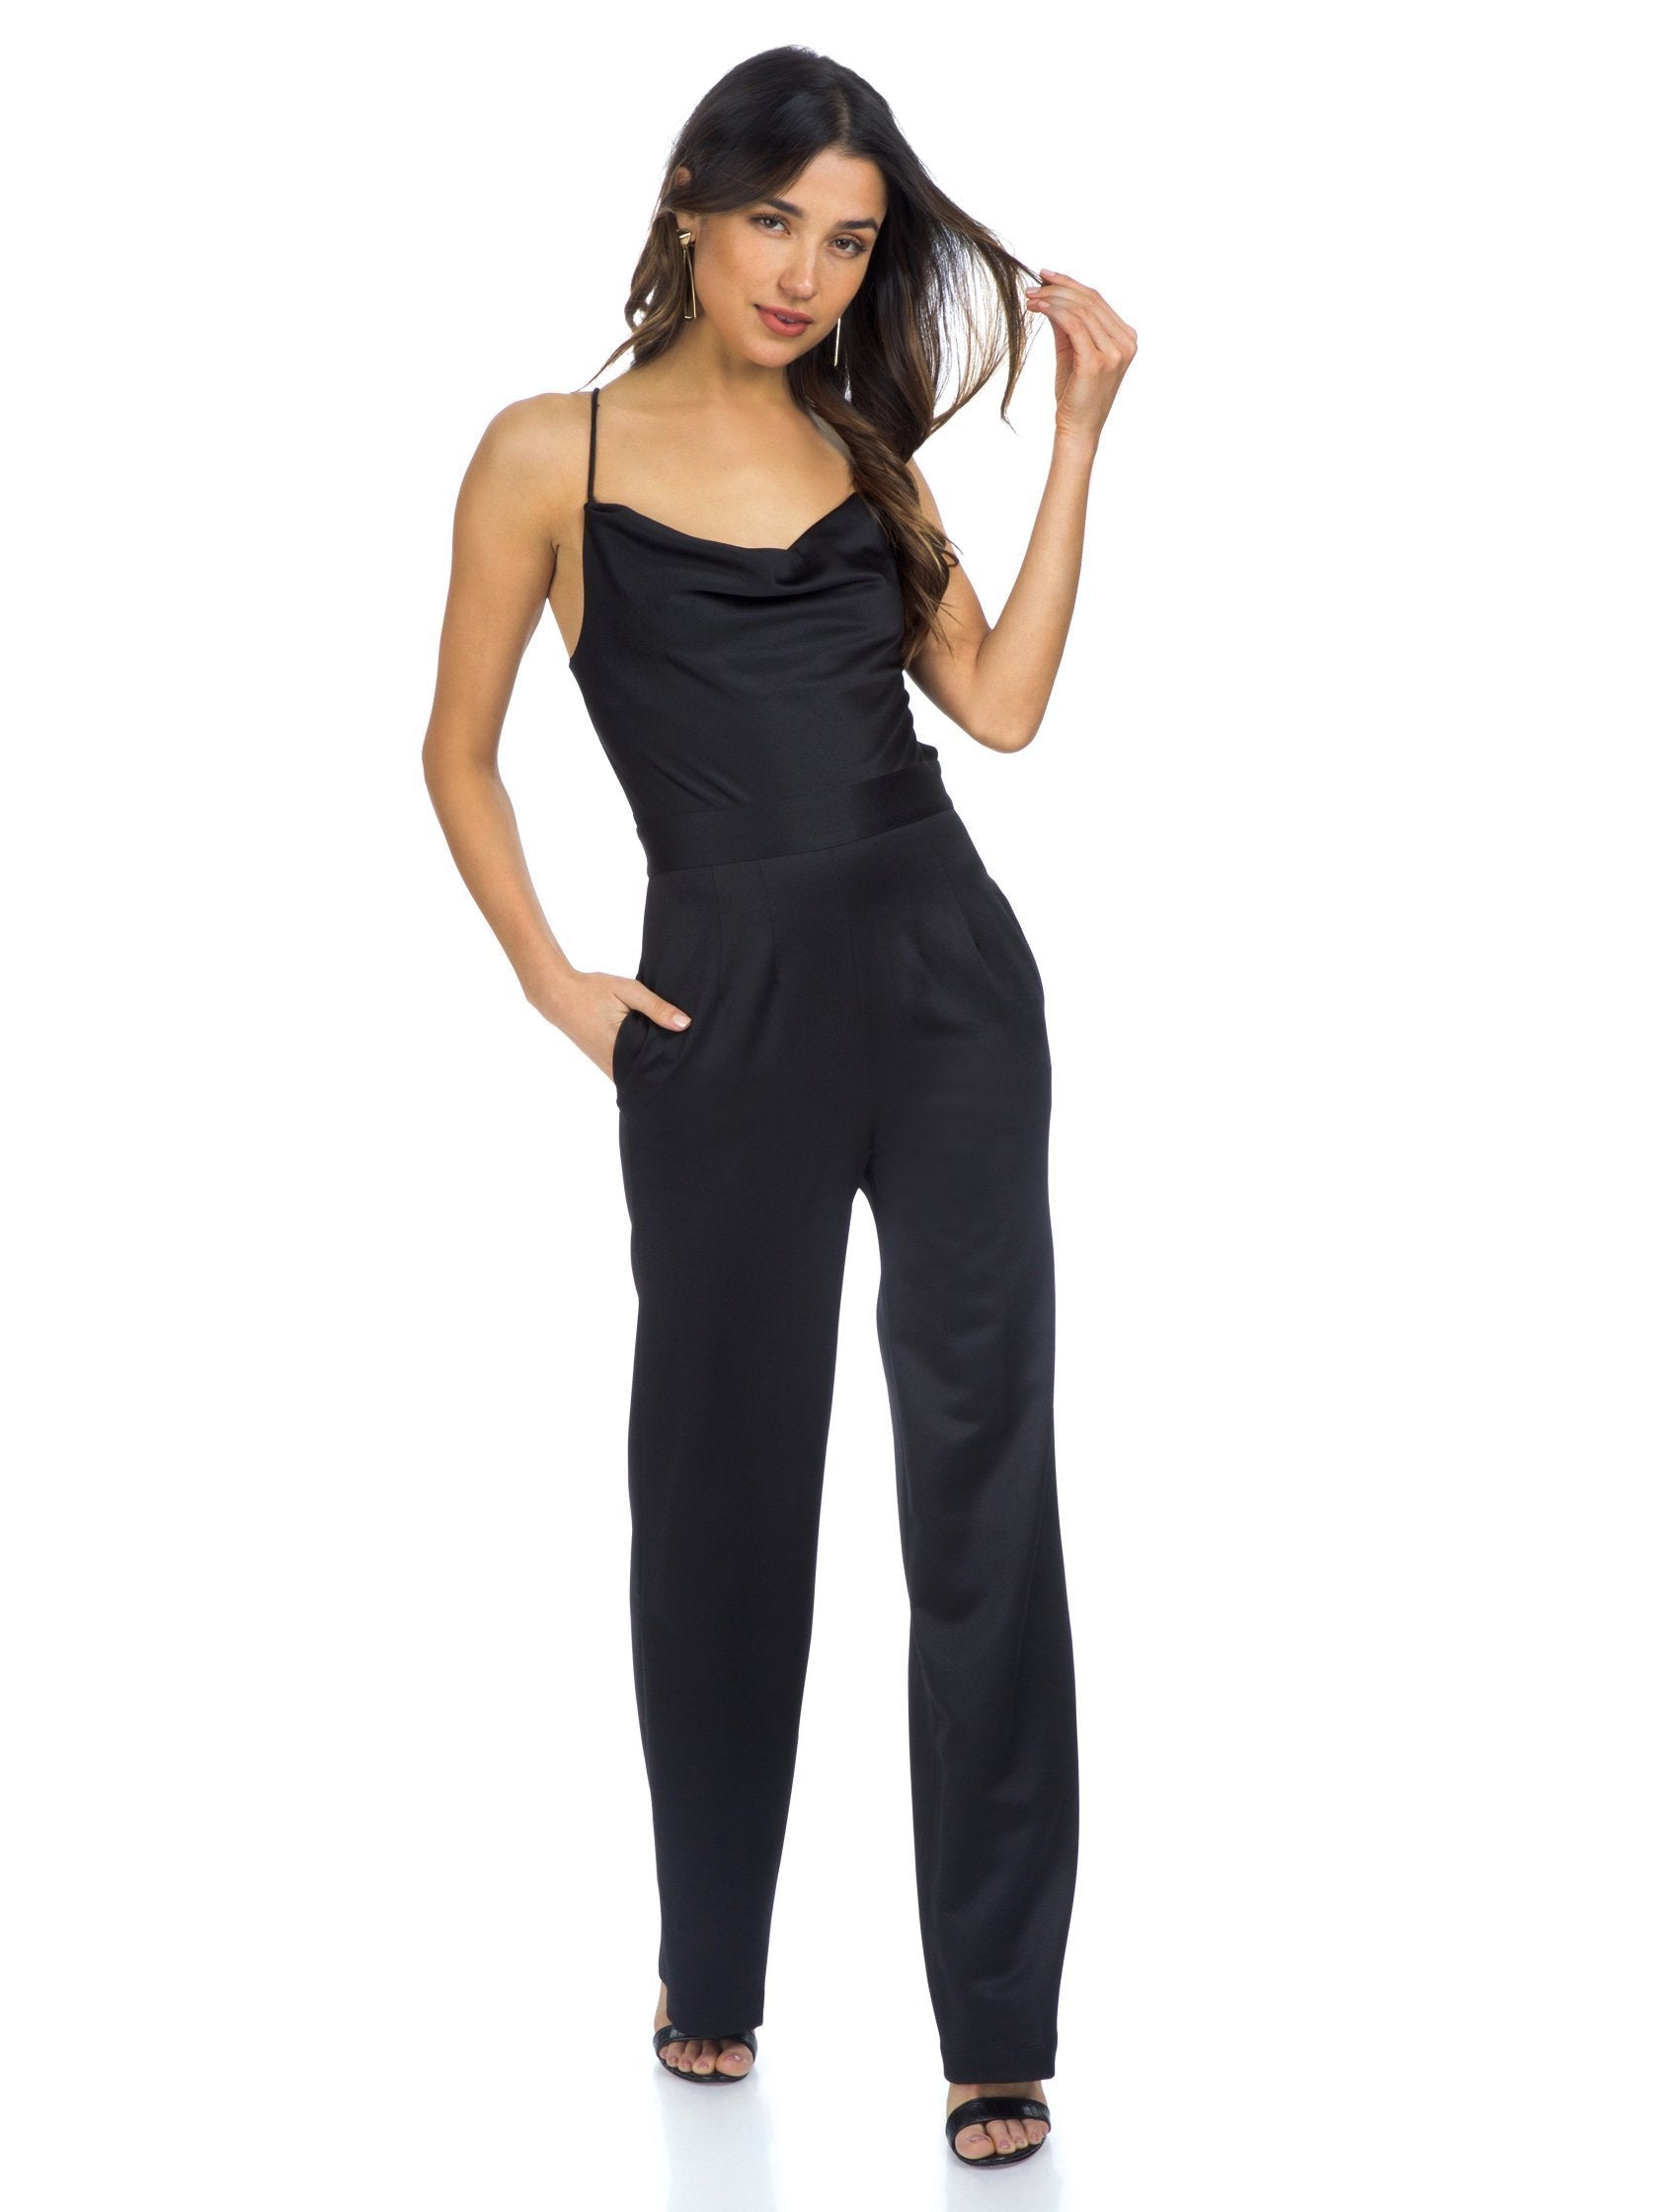 Girl outfit in a jumpsuit rental from NBD called Diem Jumpsuit